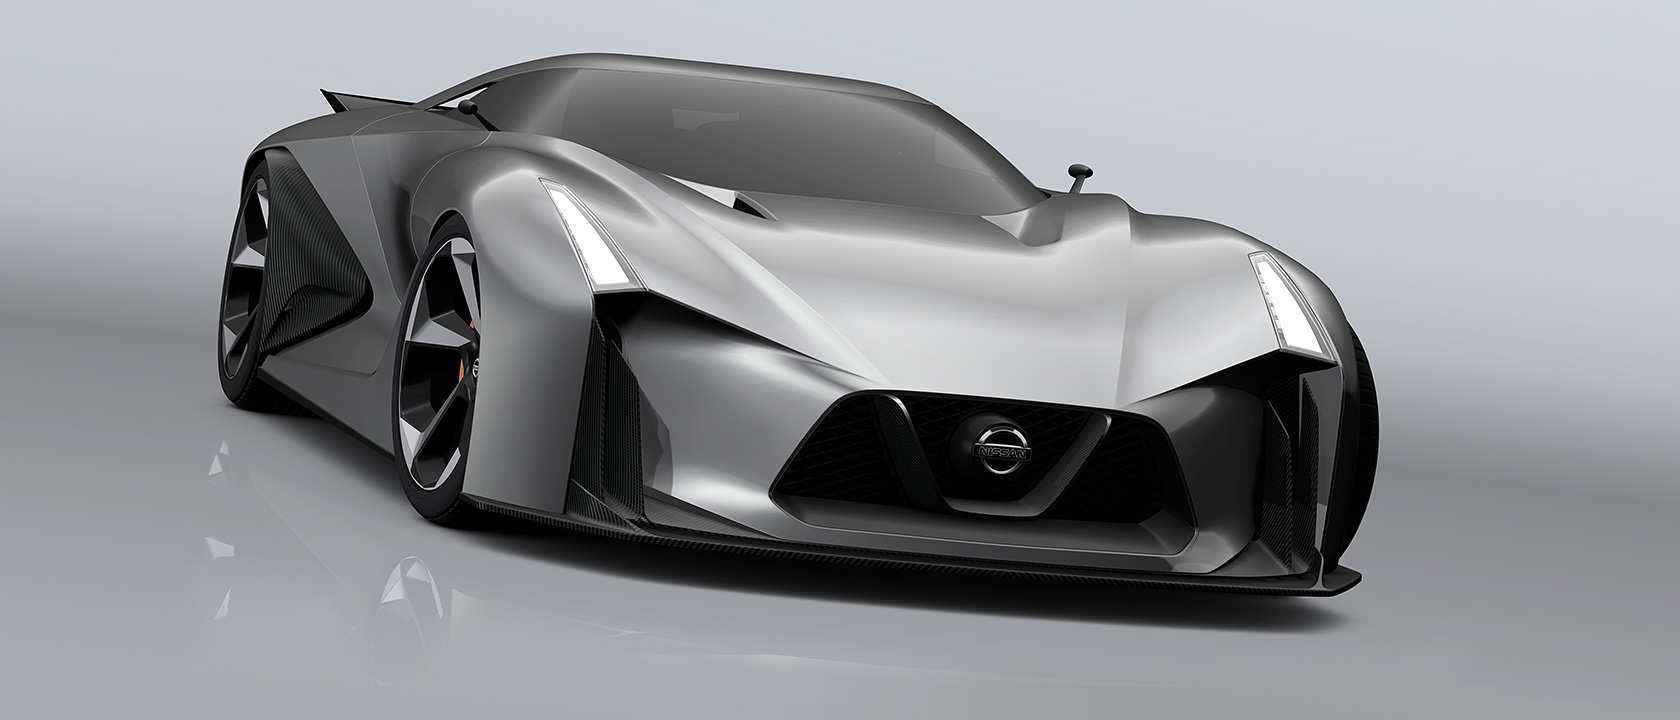 92 A Nissan Concept 2020 Price In India Configurations